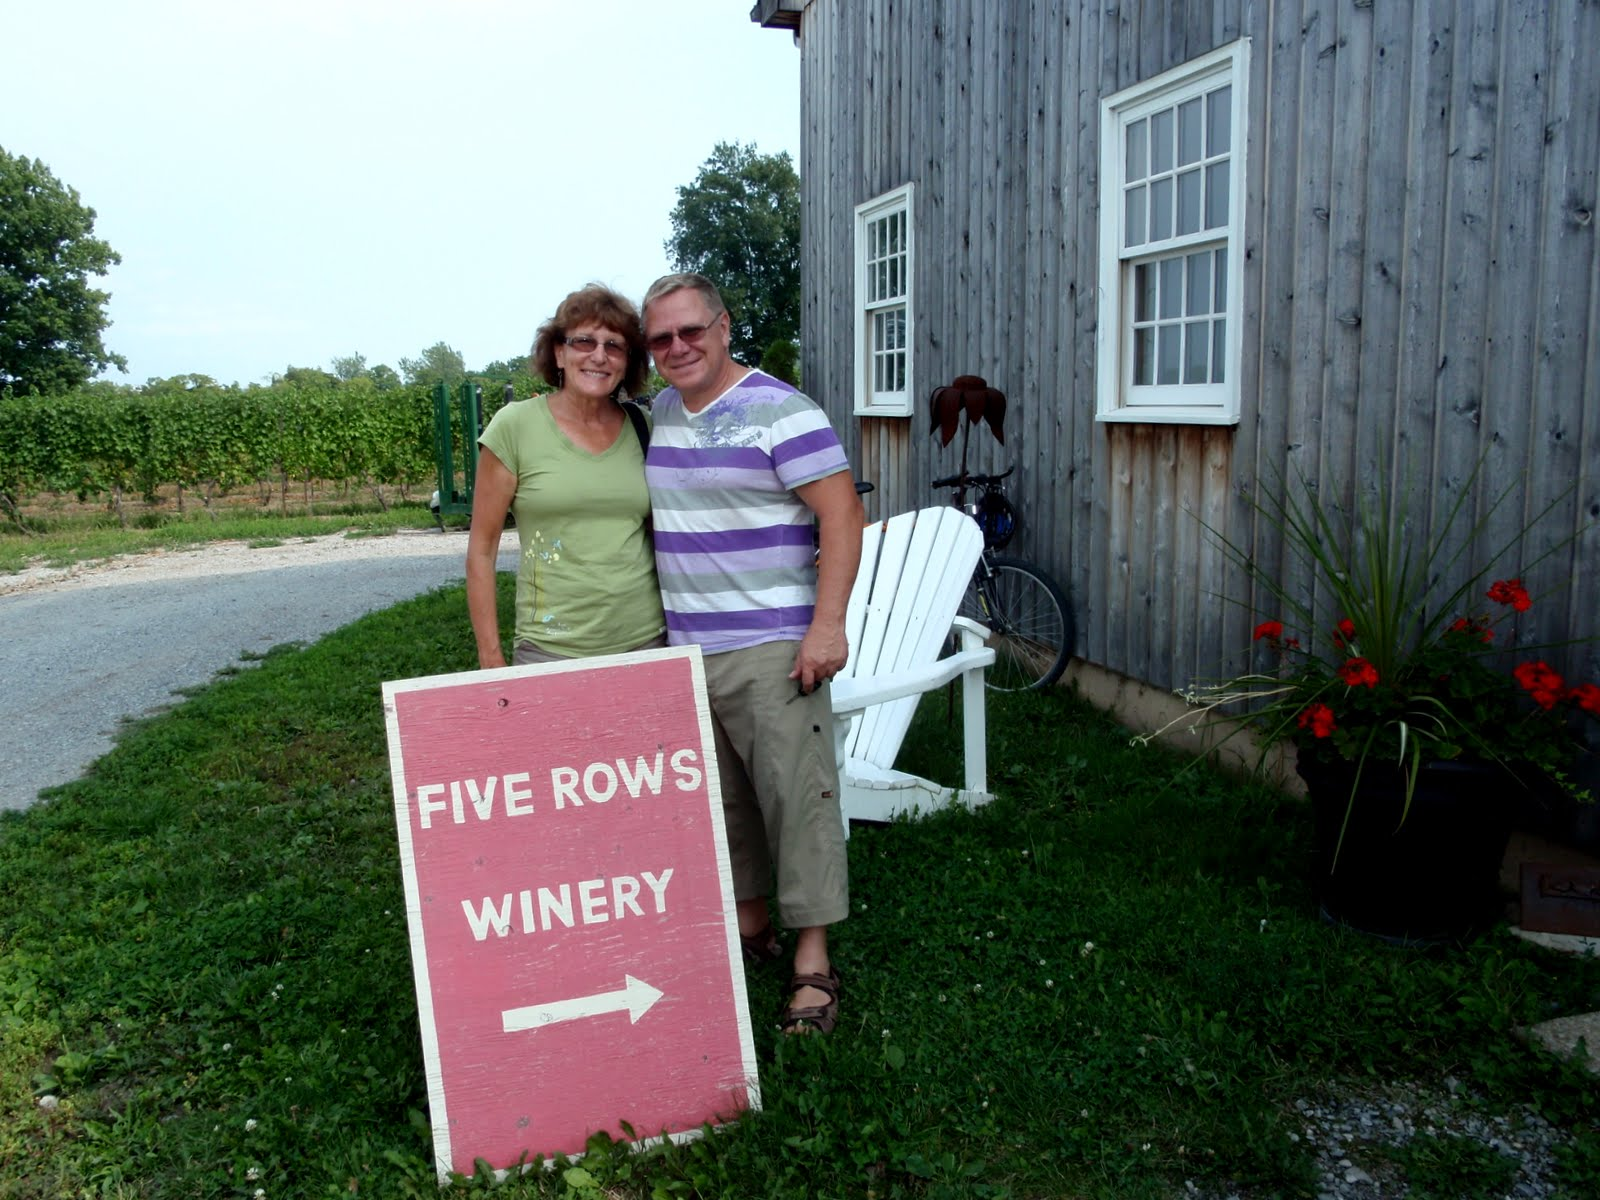 Liz and Anders at Five Rows Winery